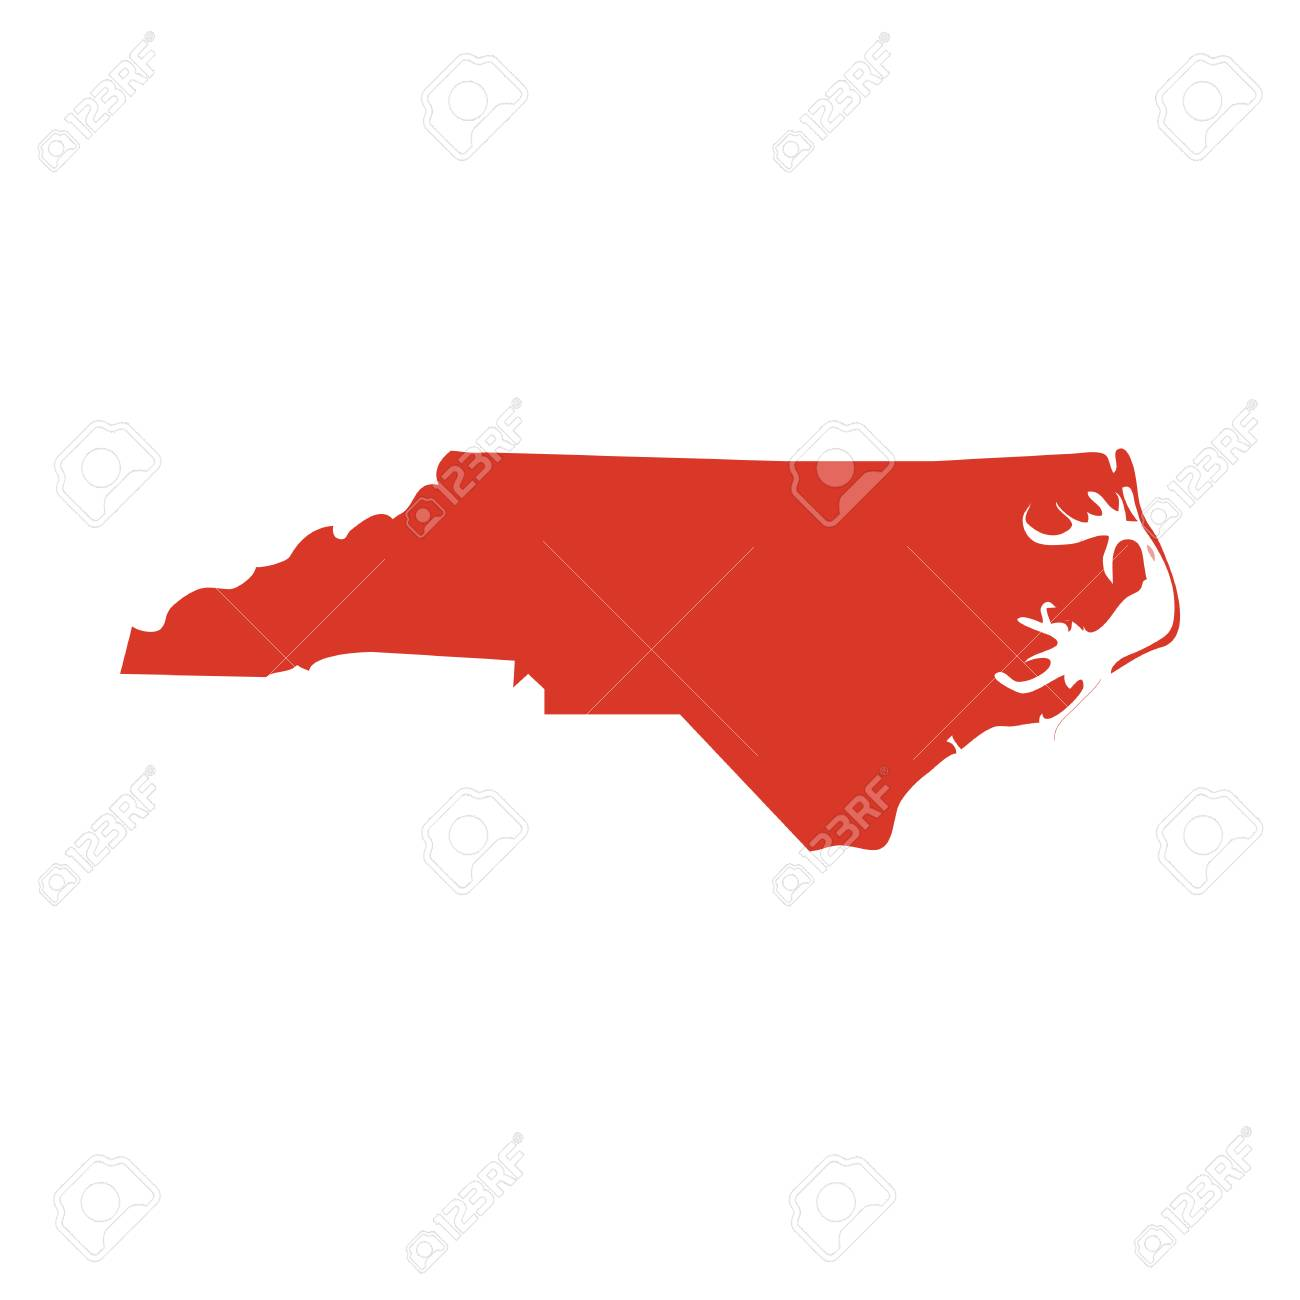 State of North Carolina vector red map silhouette. NC state shape icon. Outline contour map of North Carolina. - 101156700